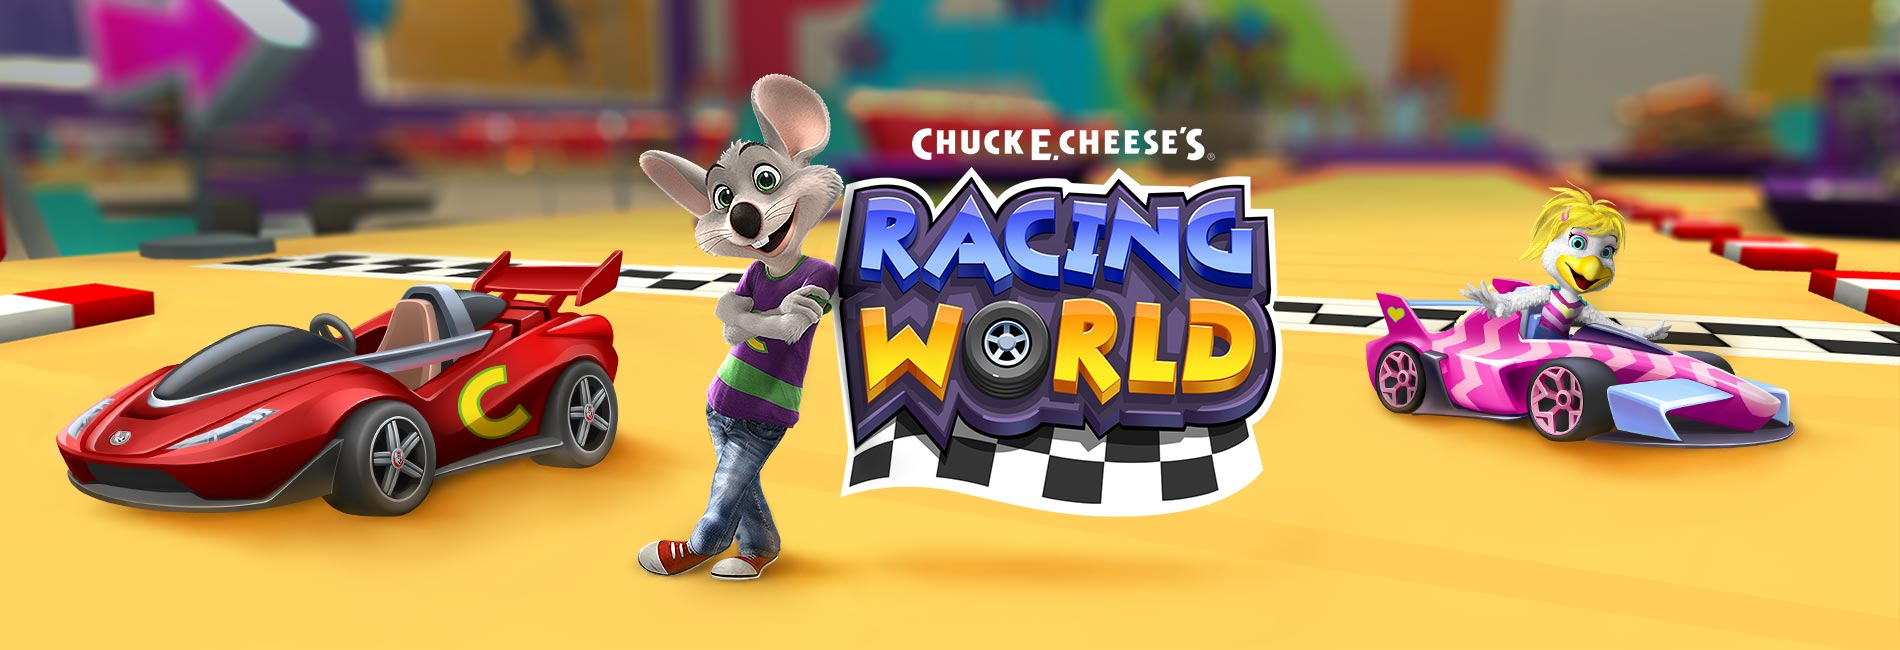 Chcuk E.Cheese's Racing World Banner